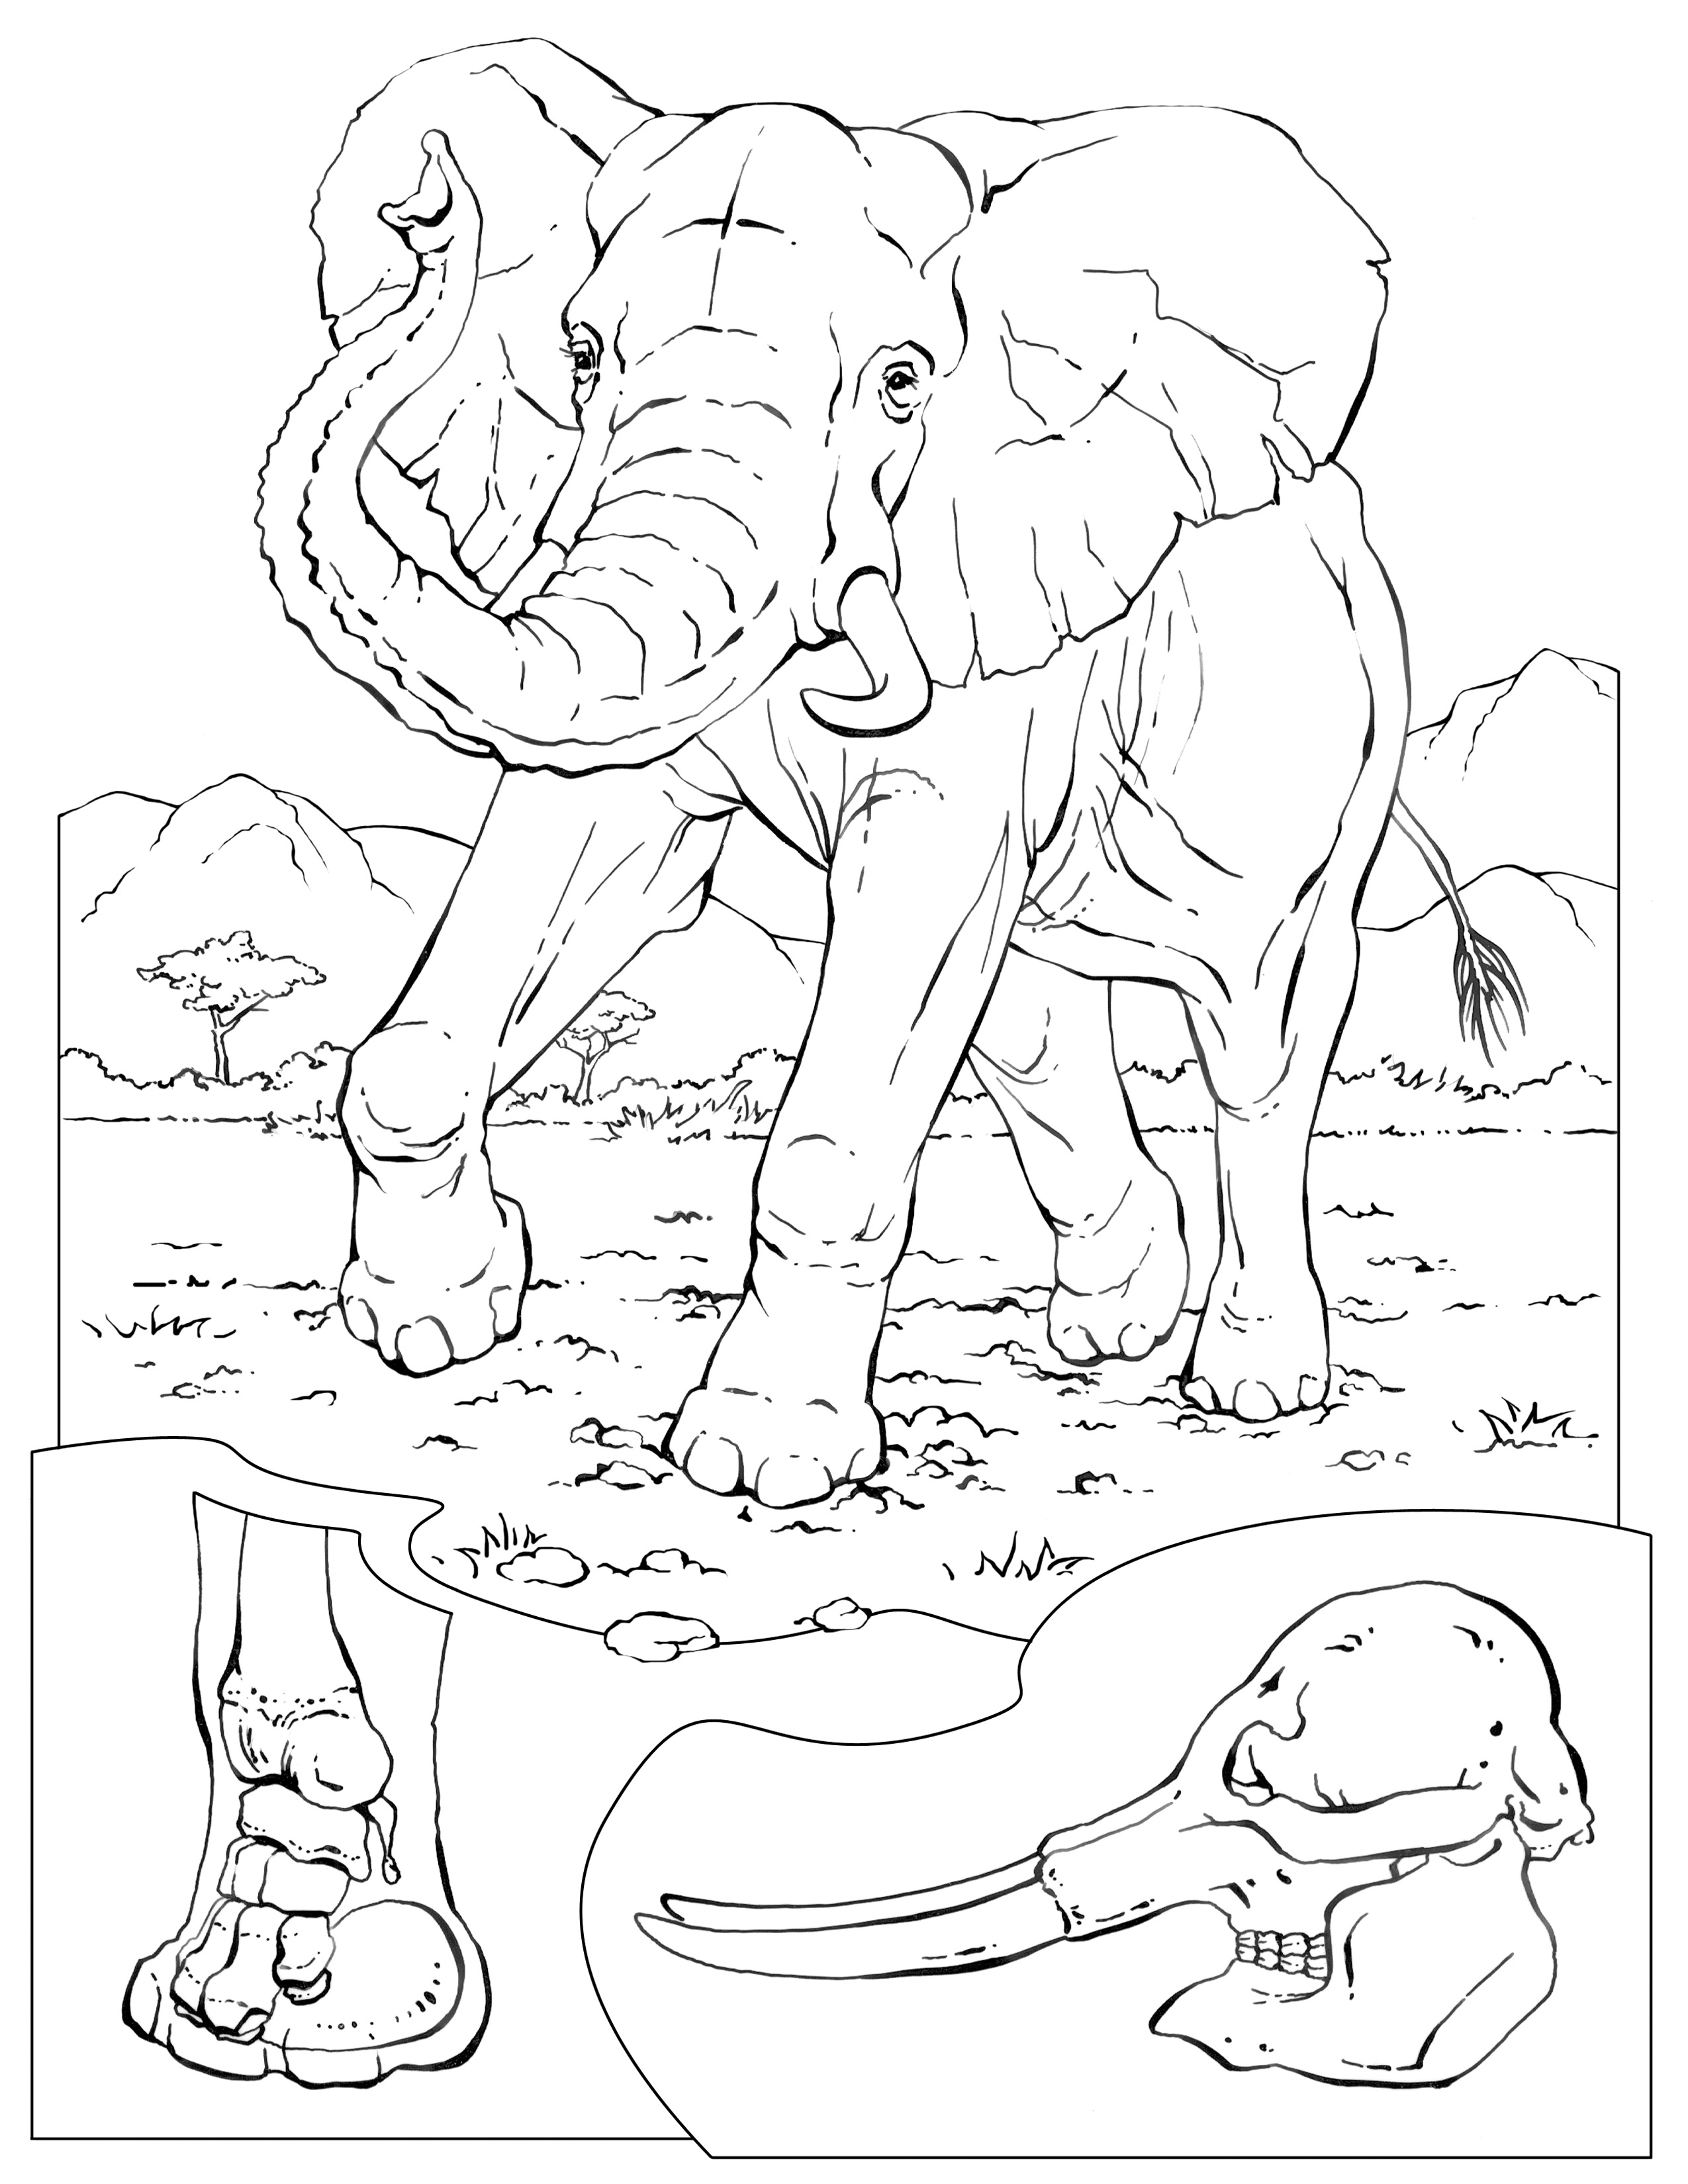 african animals colouring coloring pages wildlife research conservation african colouring animals